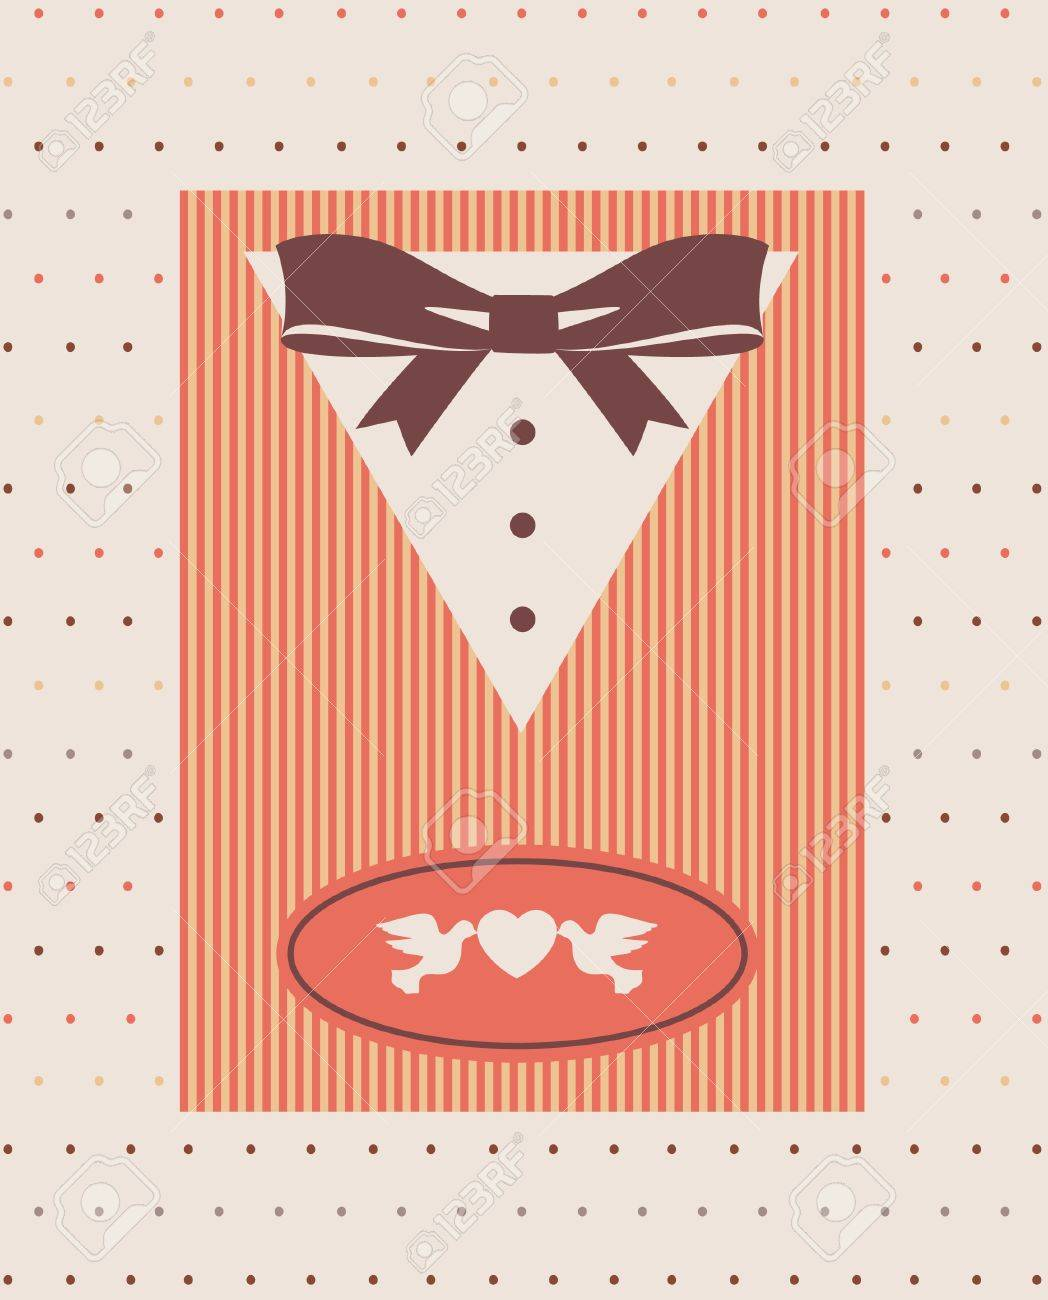 Vintage background with tuxedo shirt and bowtie close up Stock Photo - 14578478